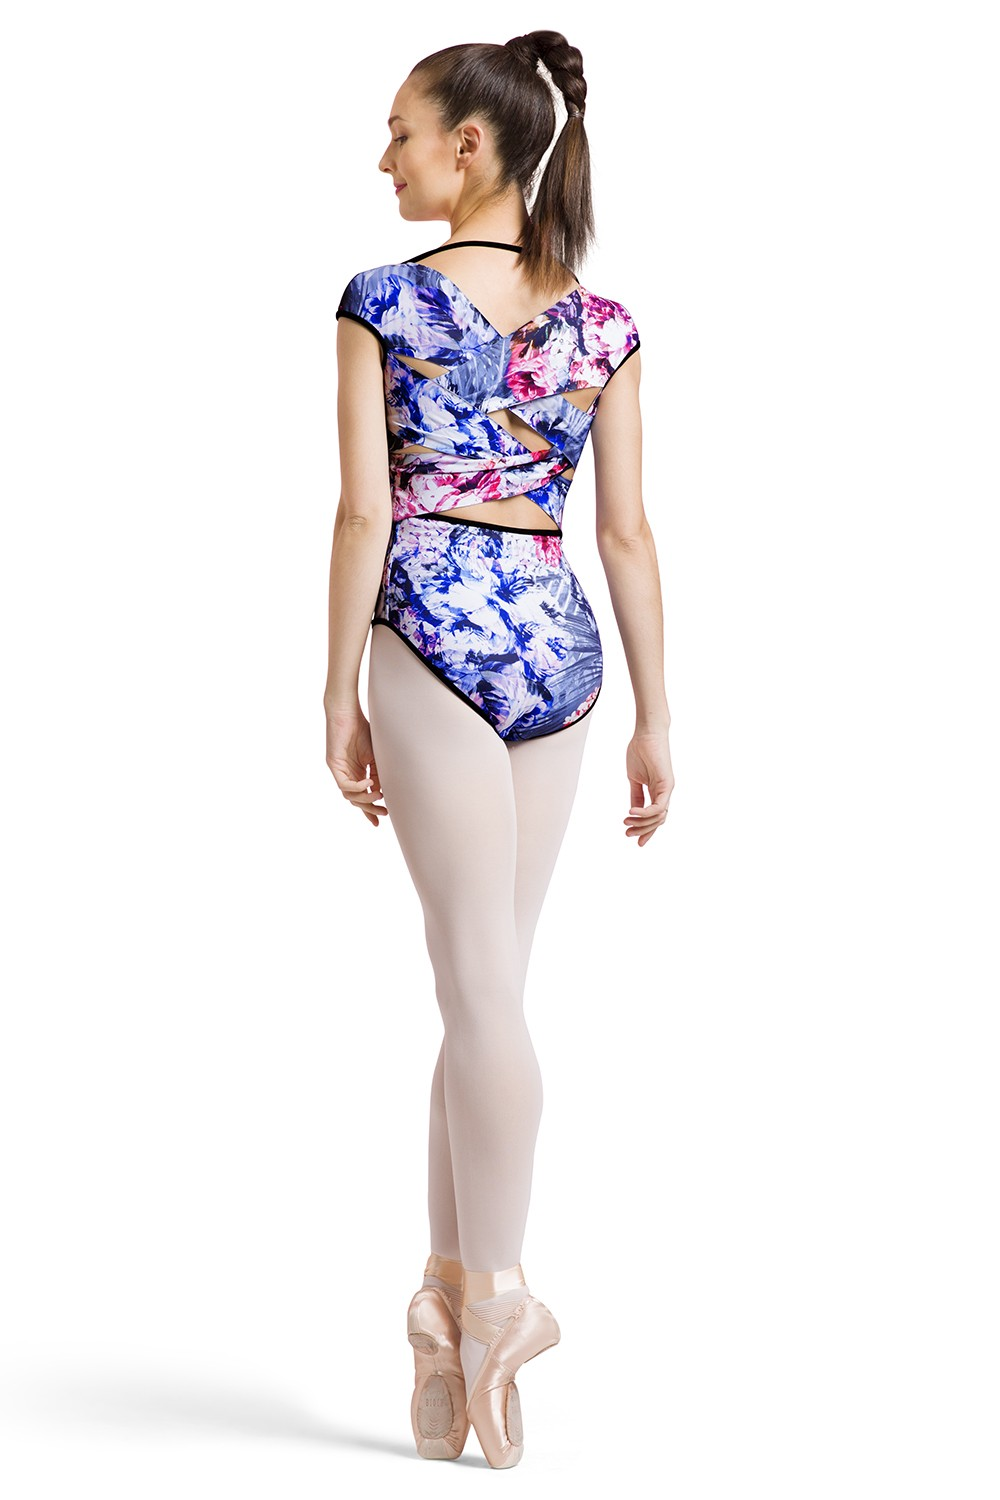 Daan Print Womens Short Sleeve Leotards